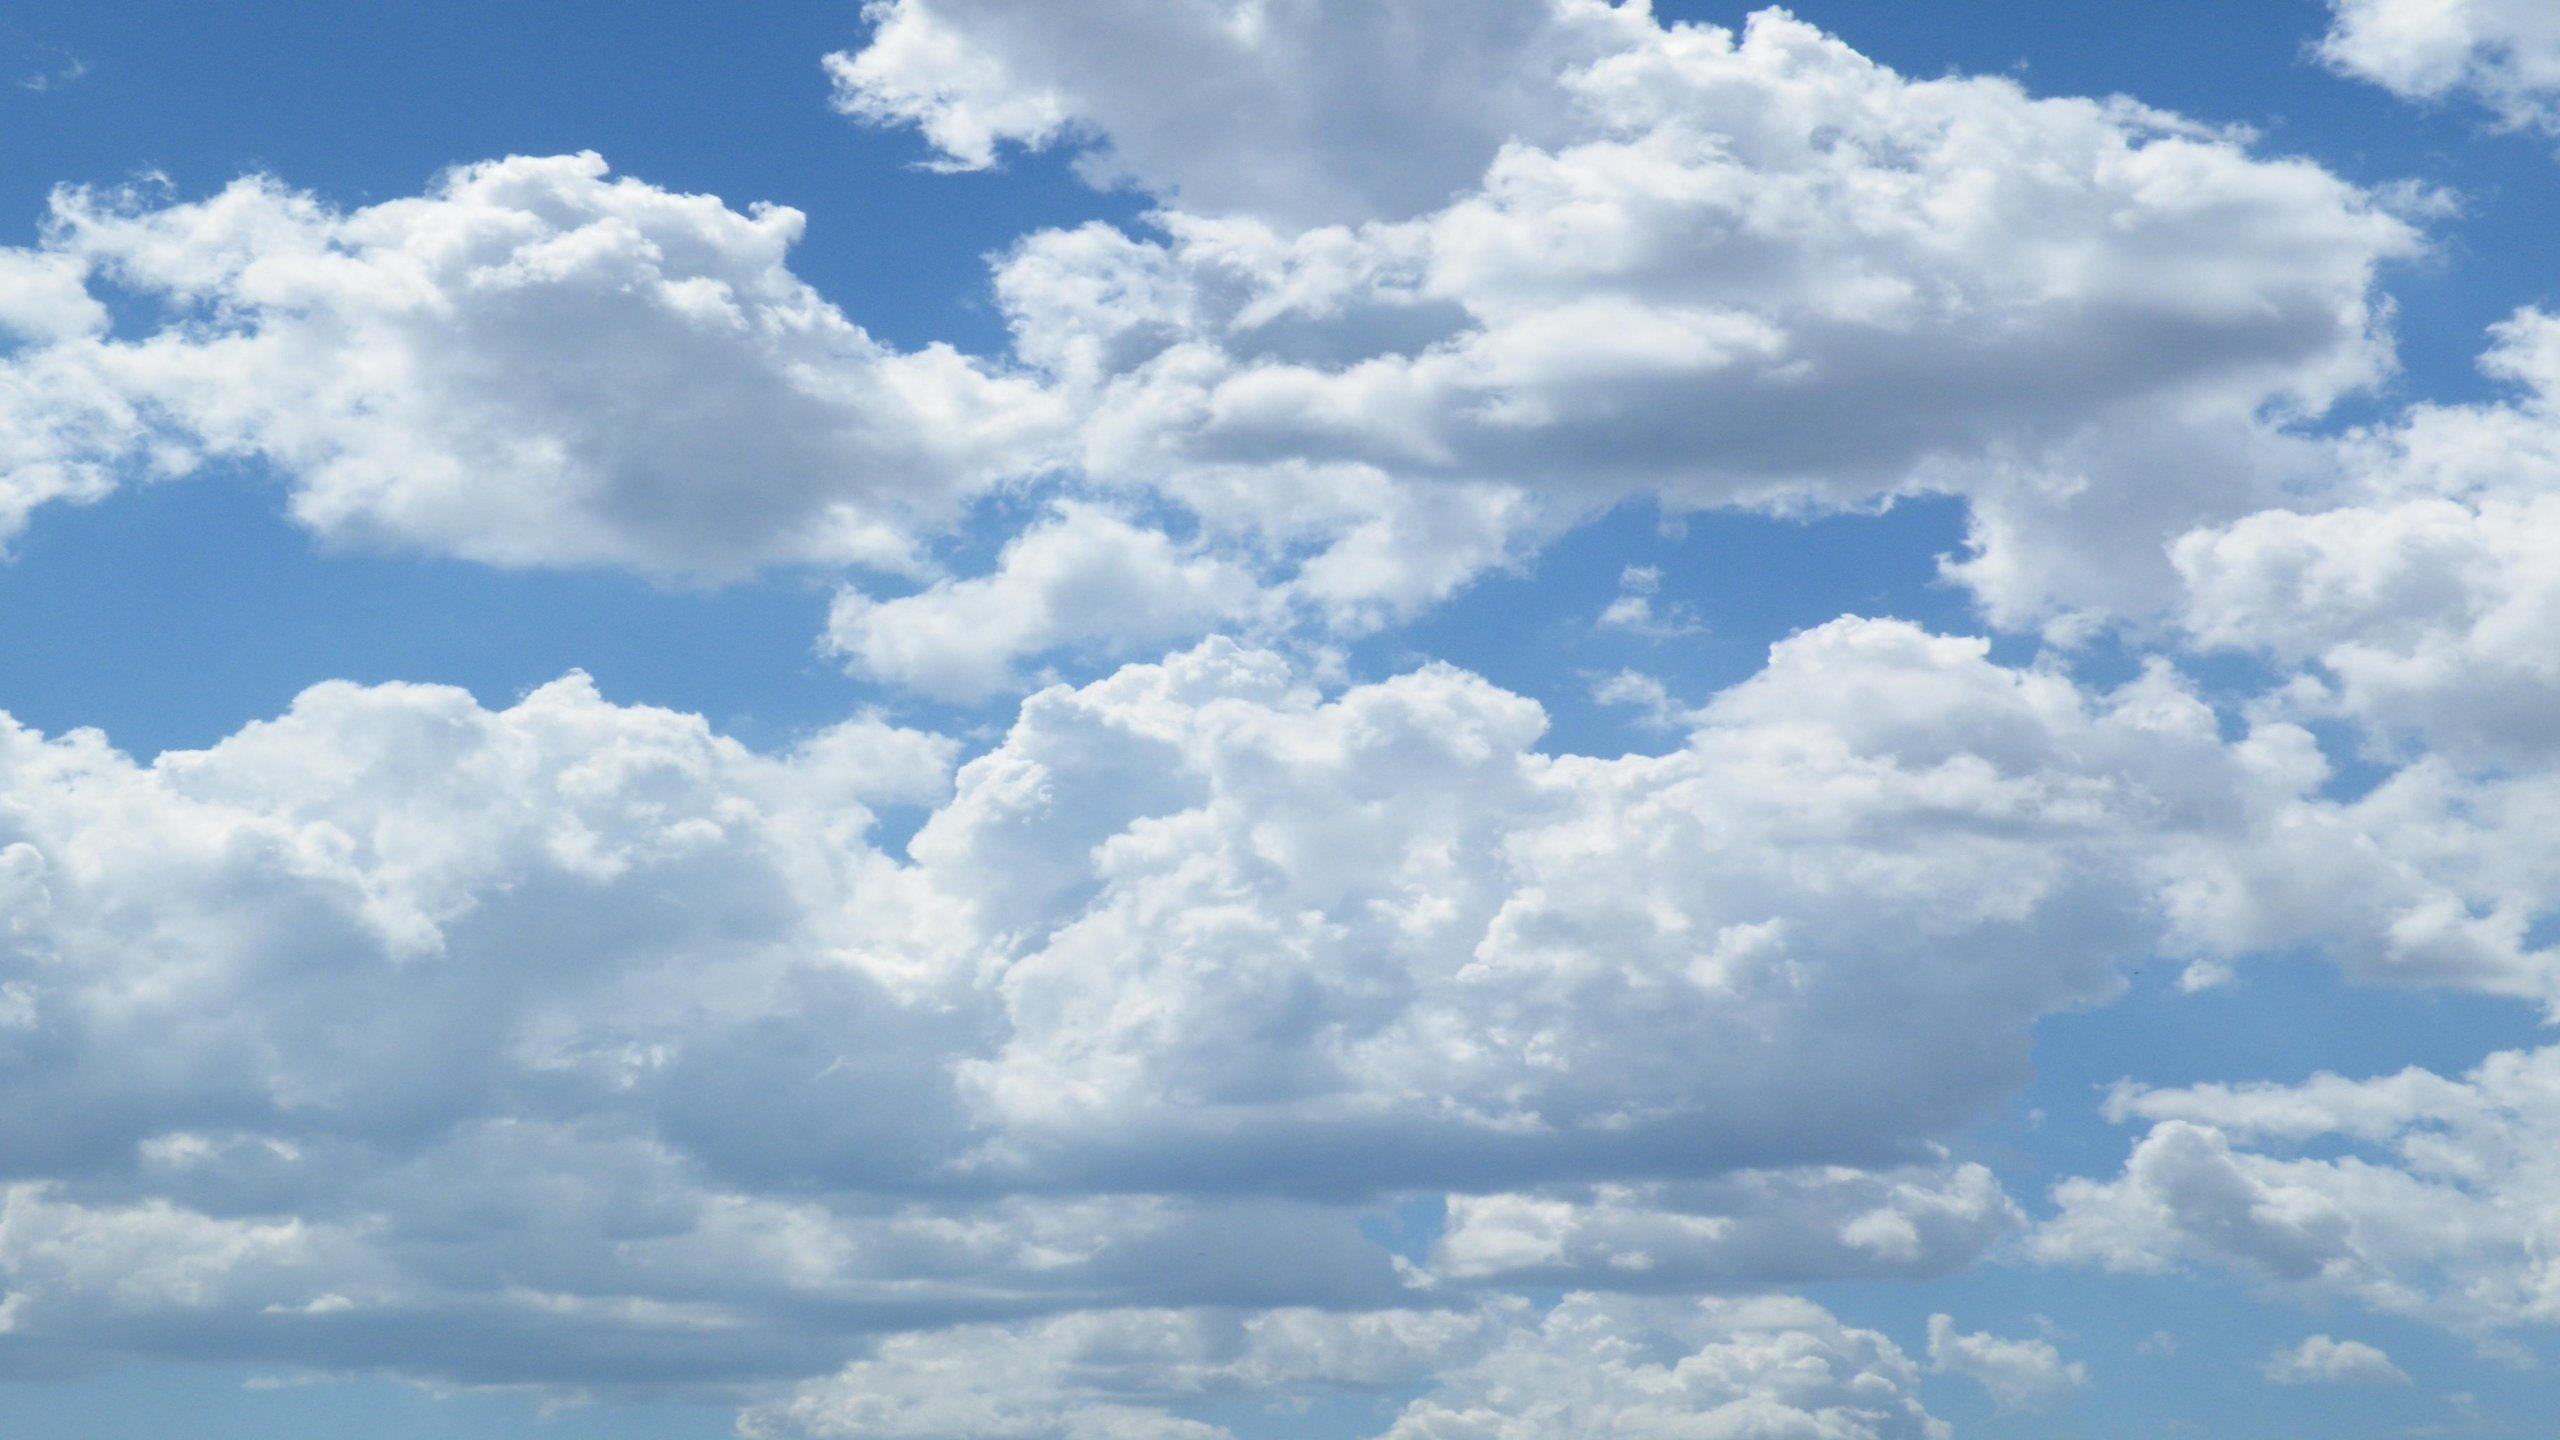 Fluffy Clouds wallpaper 242902 2560x1440